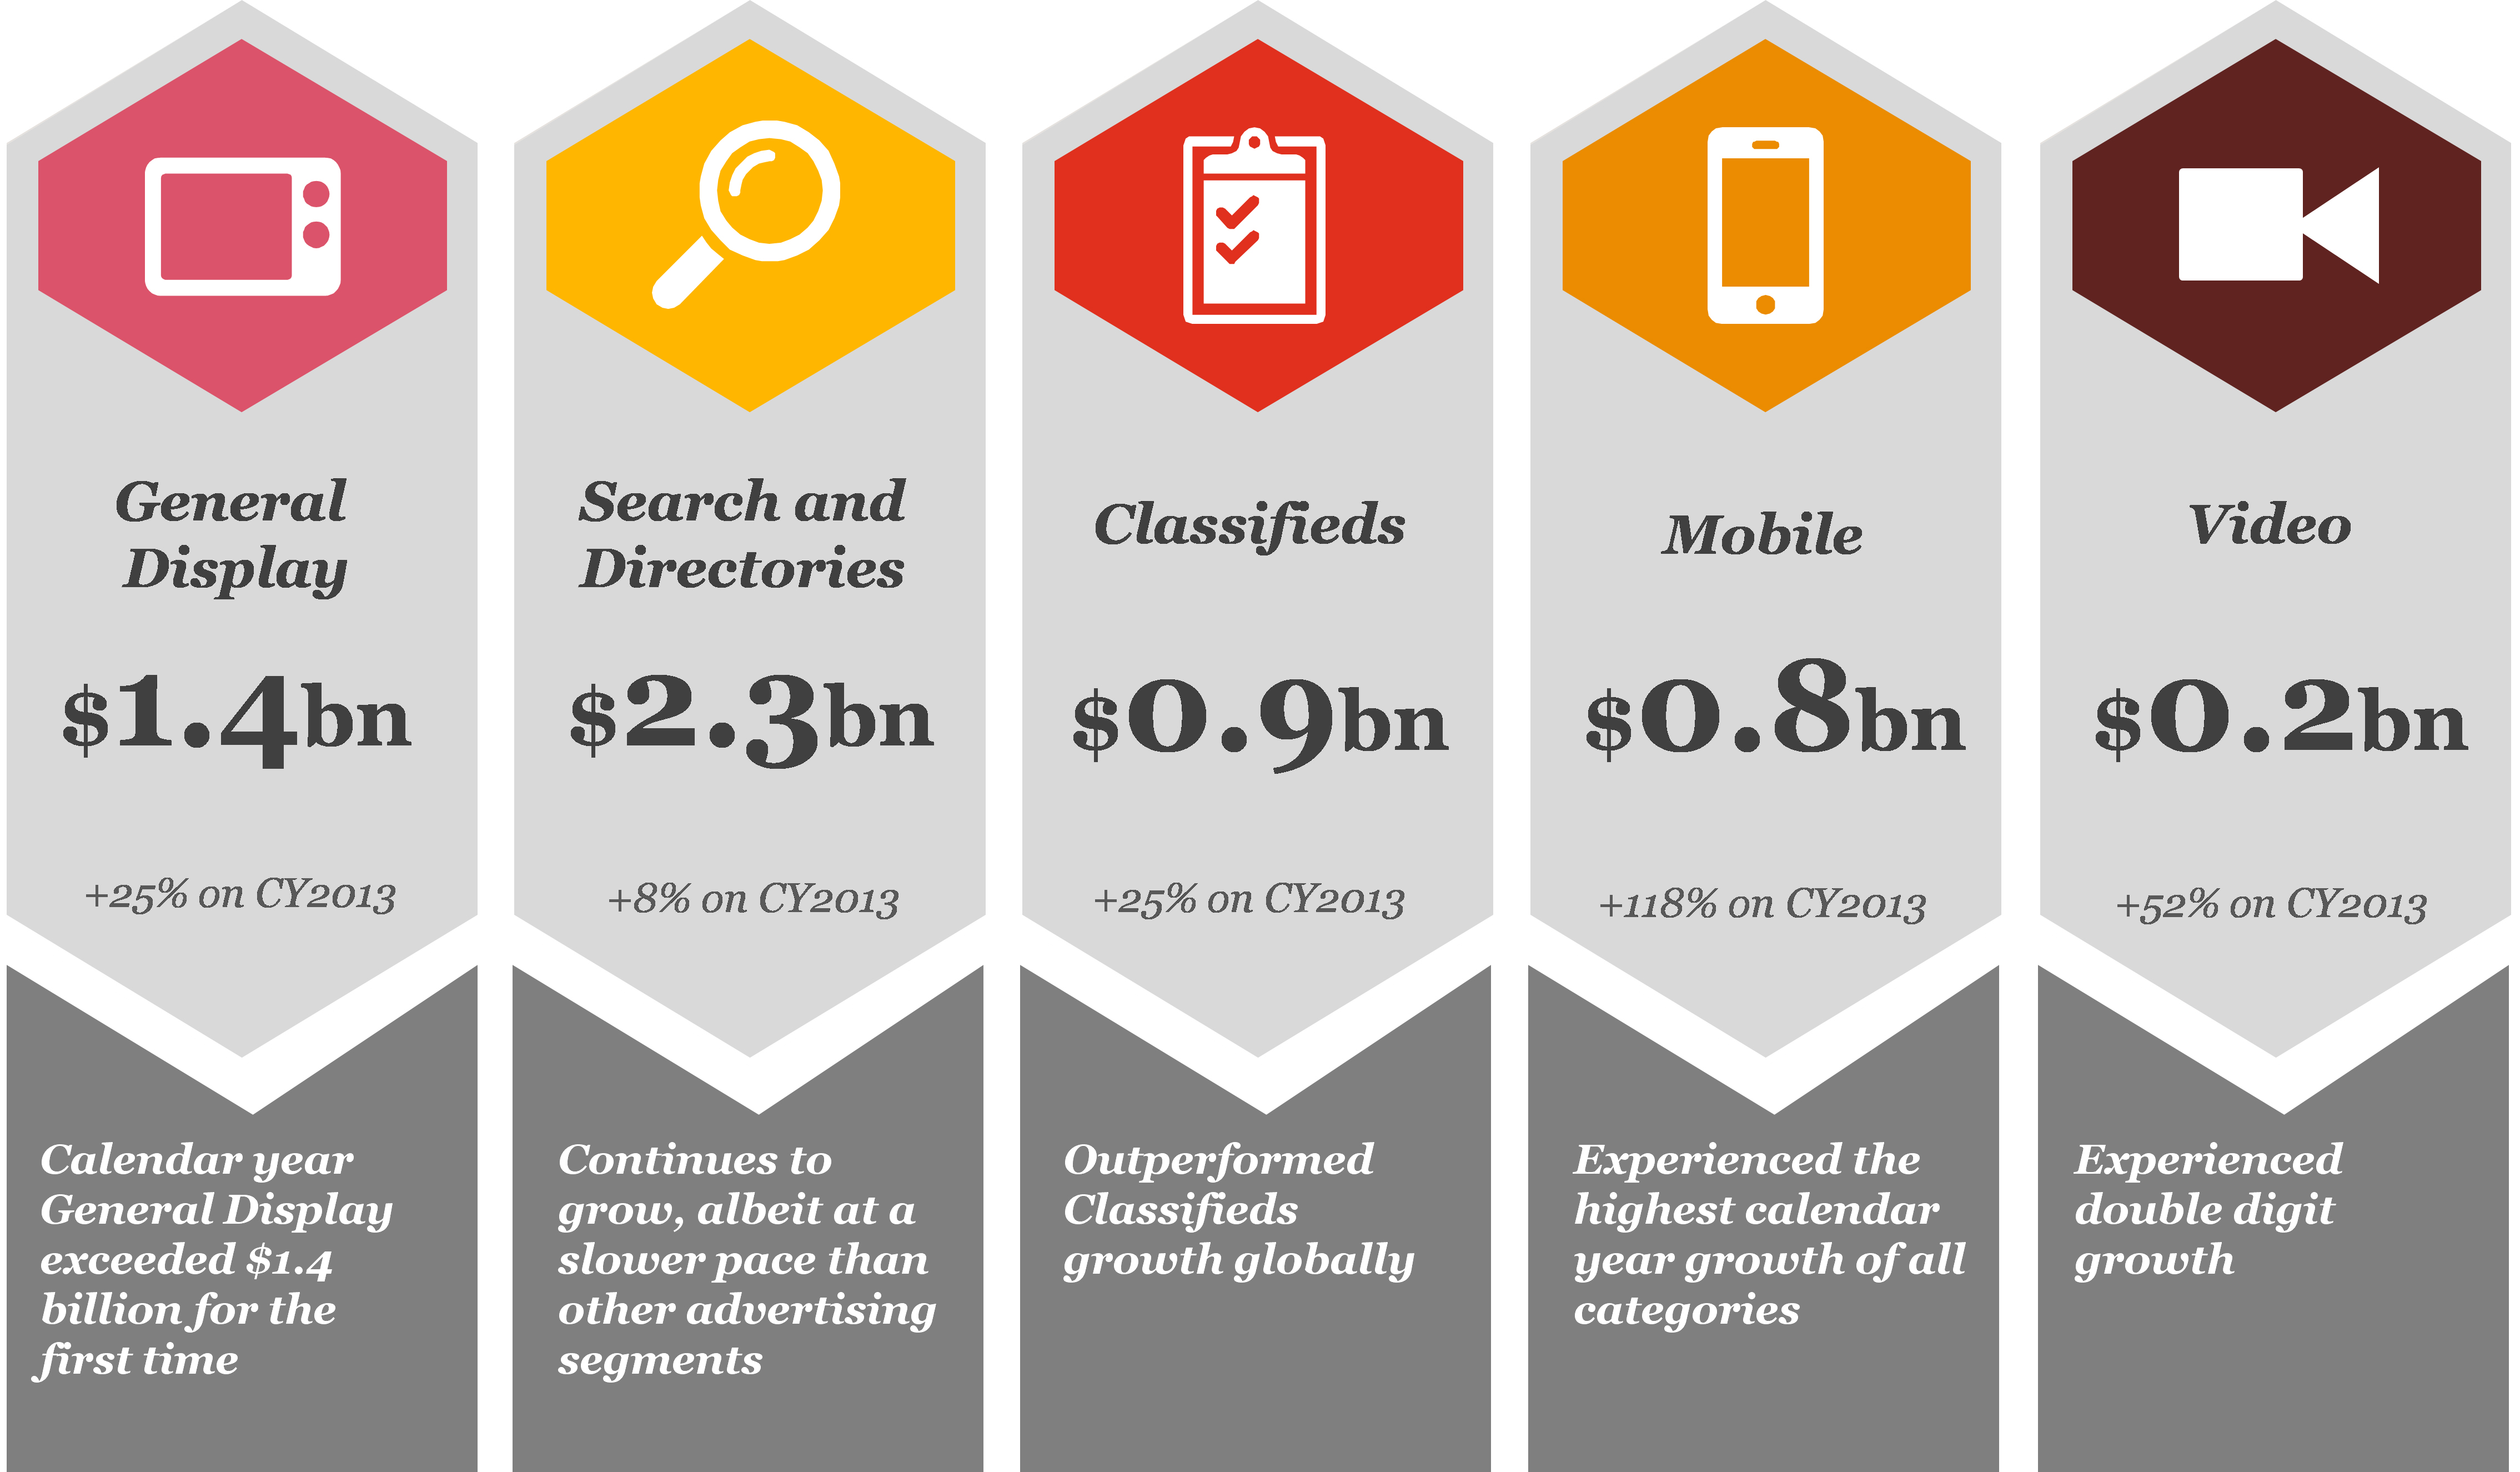 Mobile and Video Advertising Continue to Surge